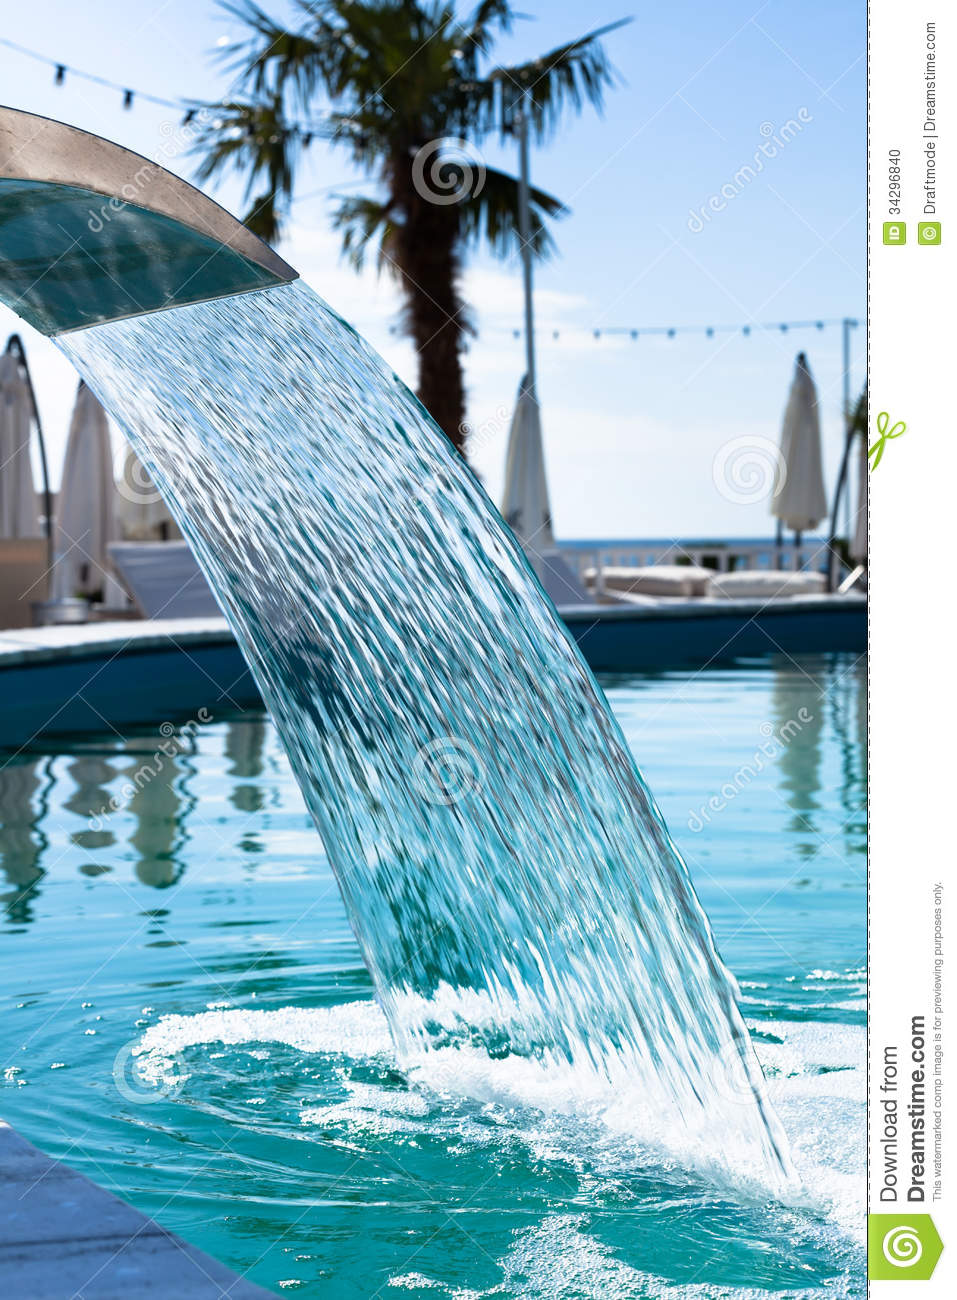 Swimming Pool Waterfall Jet Stock Photo Image Of Shower Empty 34296840